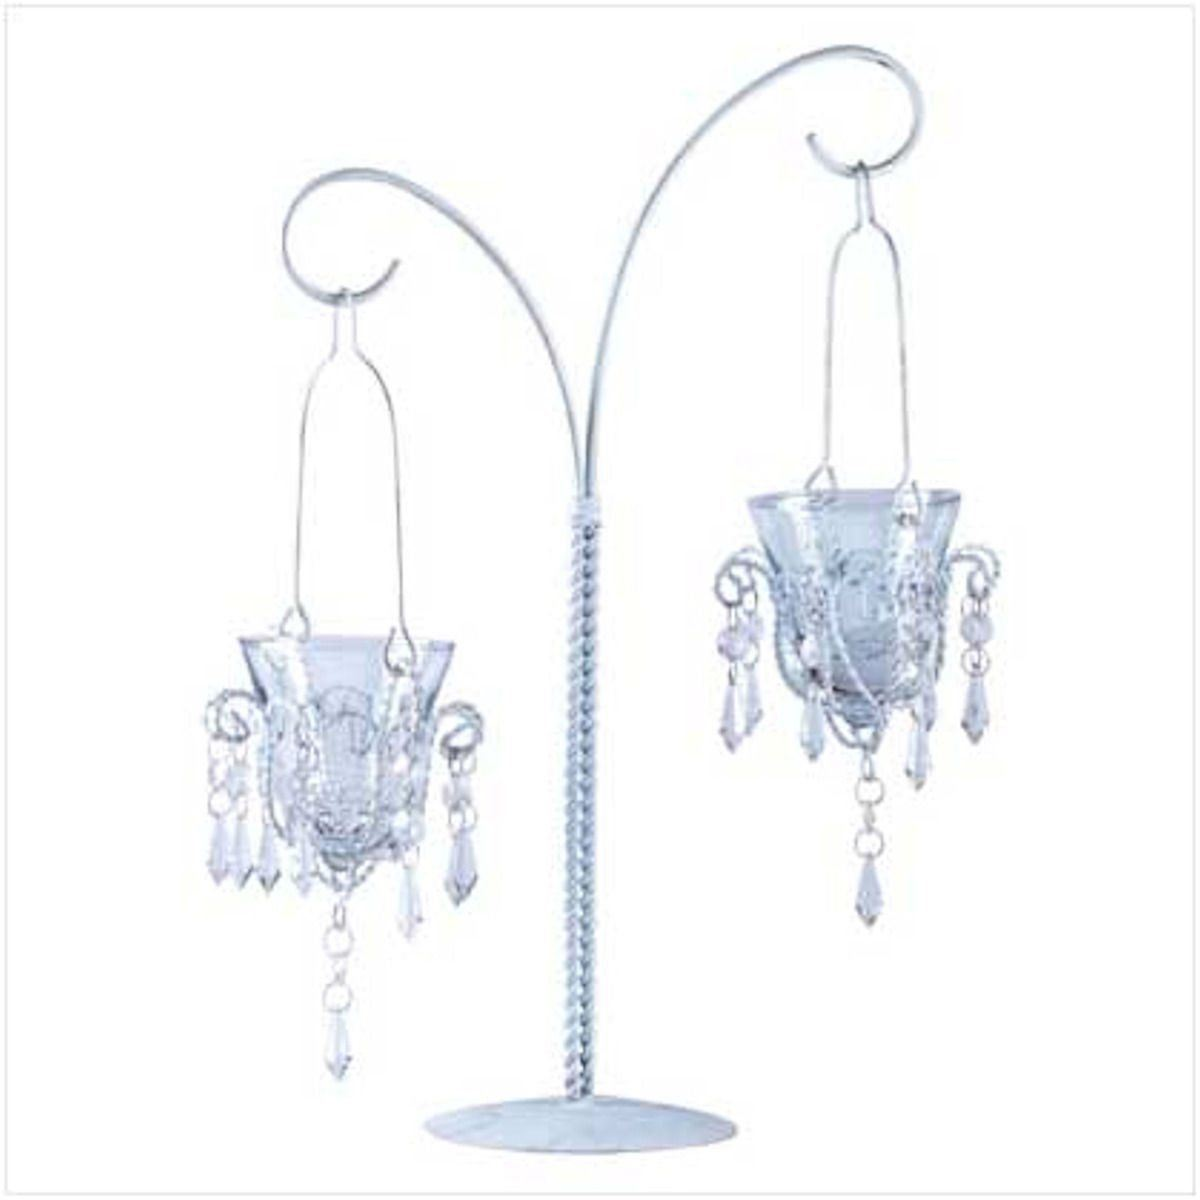 Lot of 10 MINI CHANDELIER VOTIVE STAND Jeweled Hanging Candle Holder Centerpiece